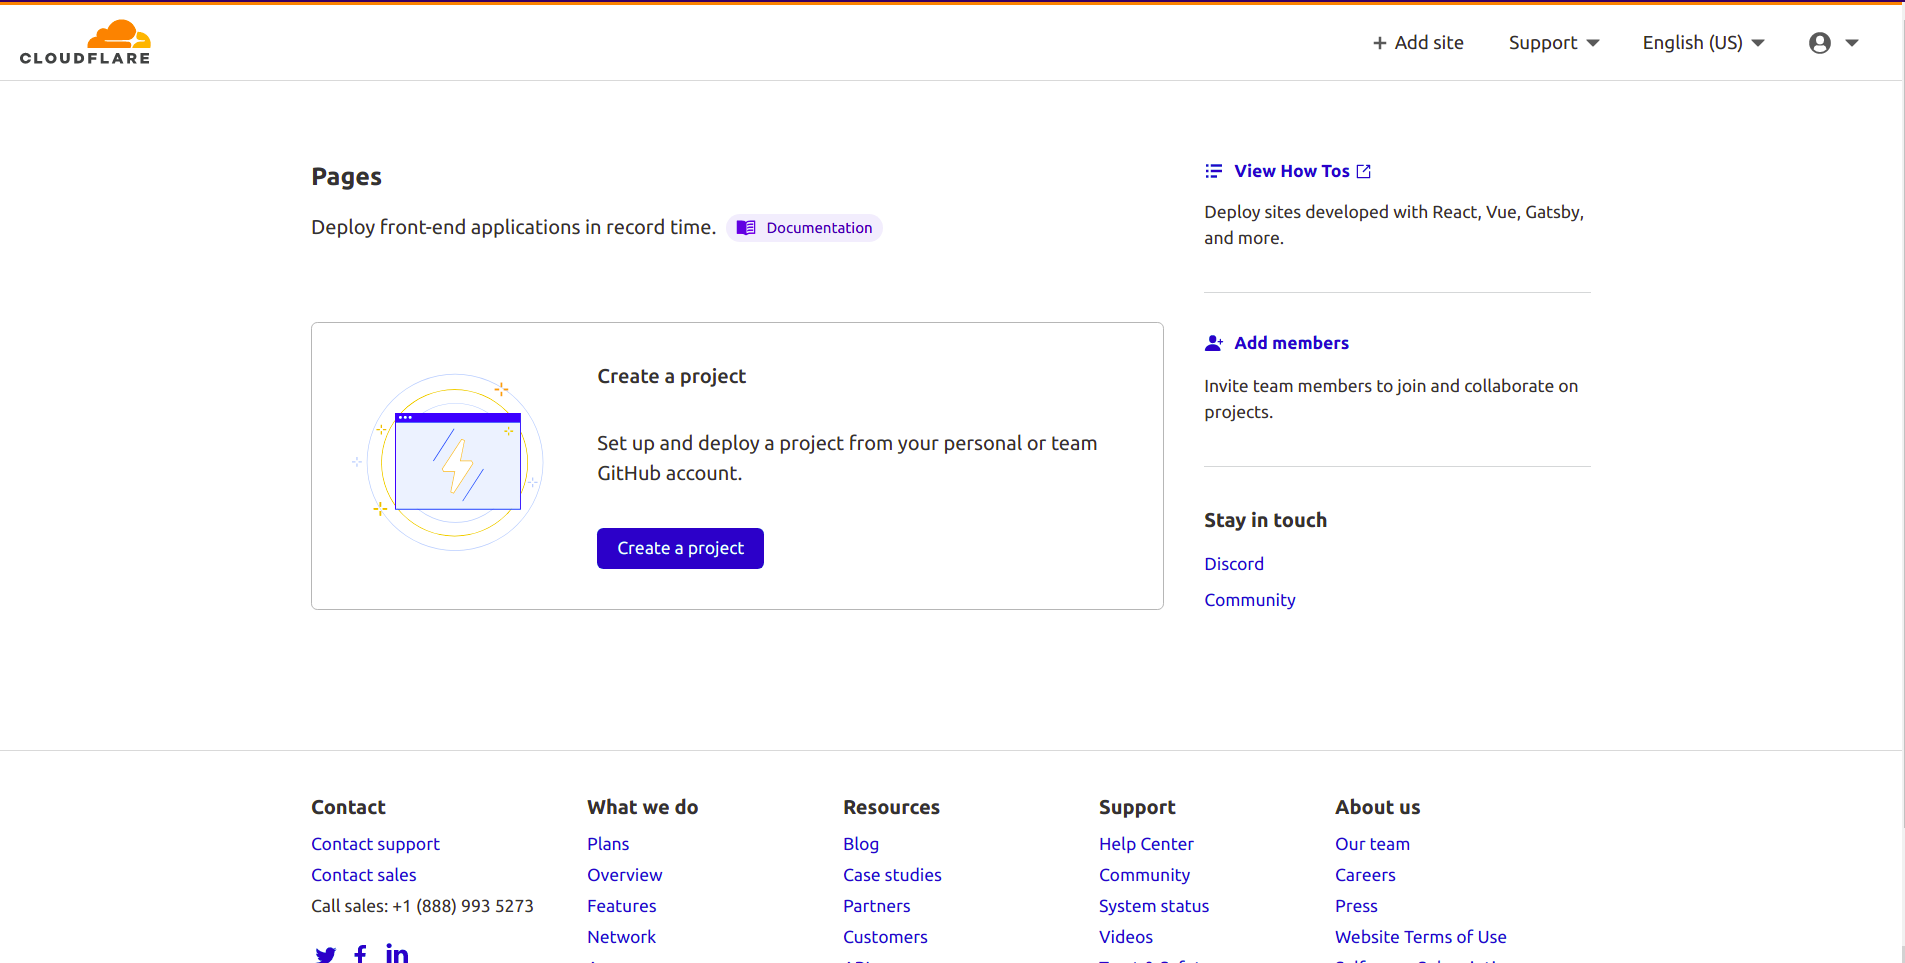 Cloudflare Pages Dashboard